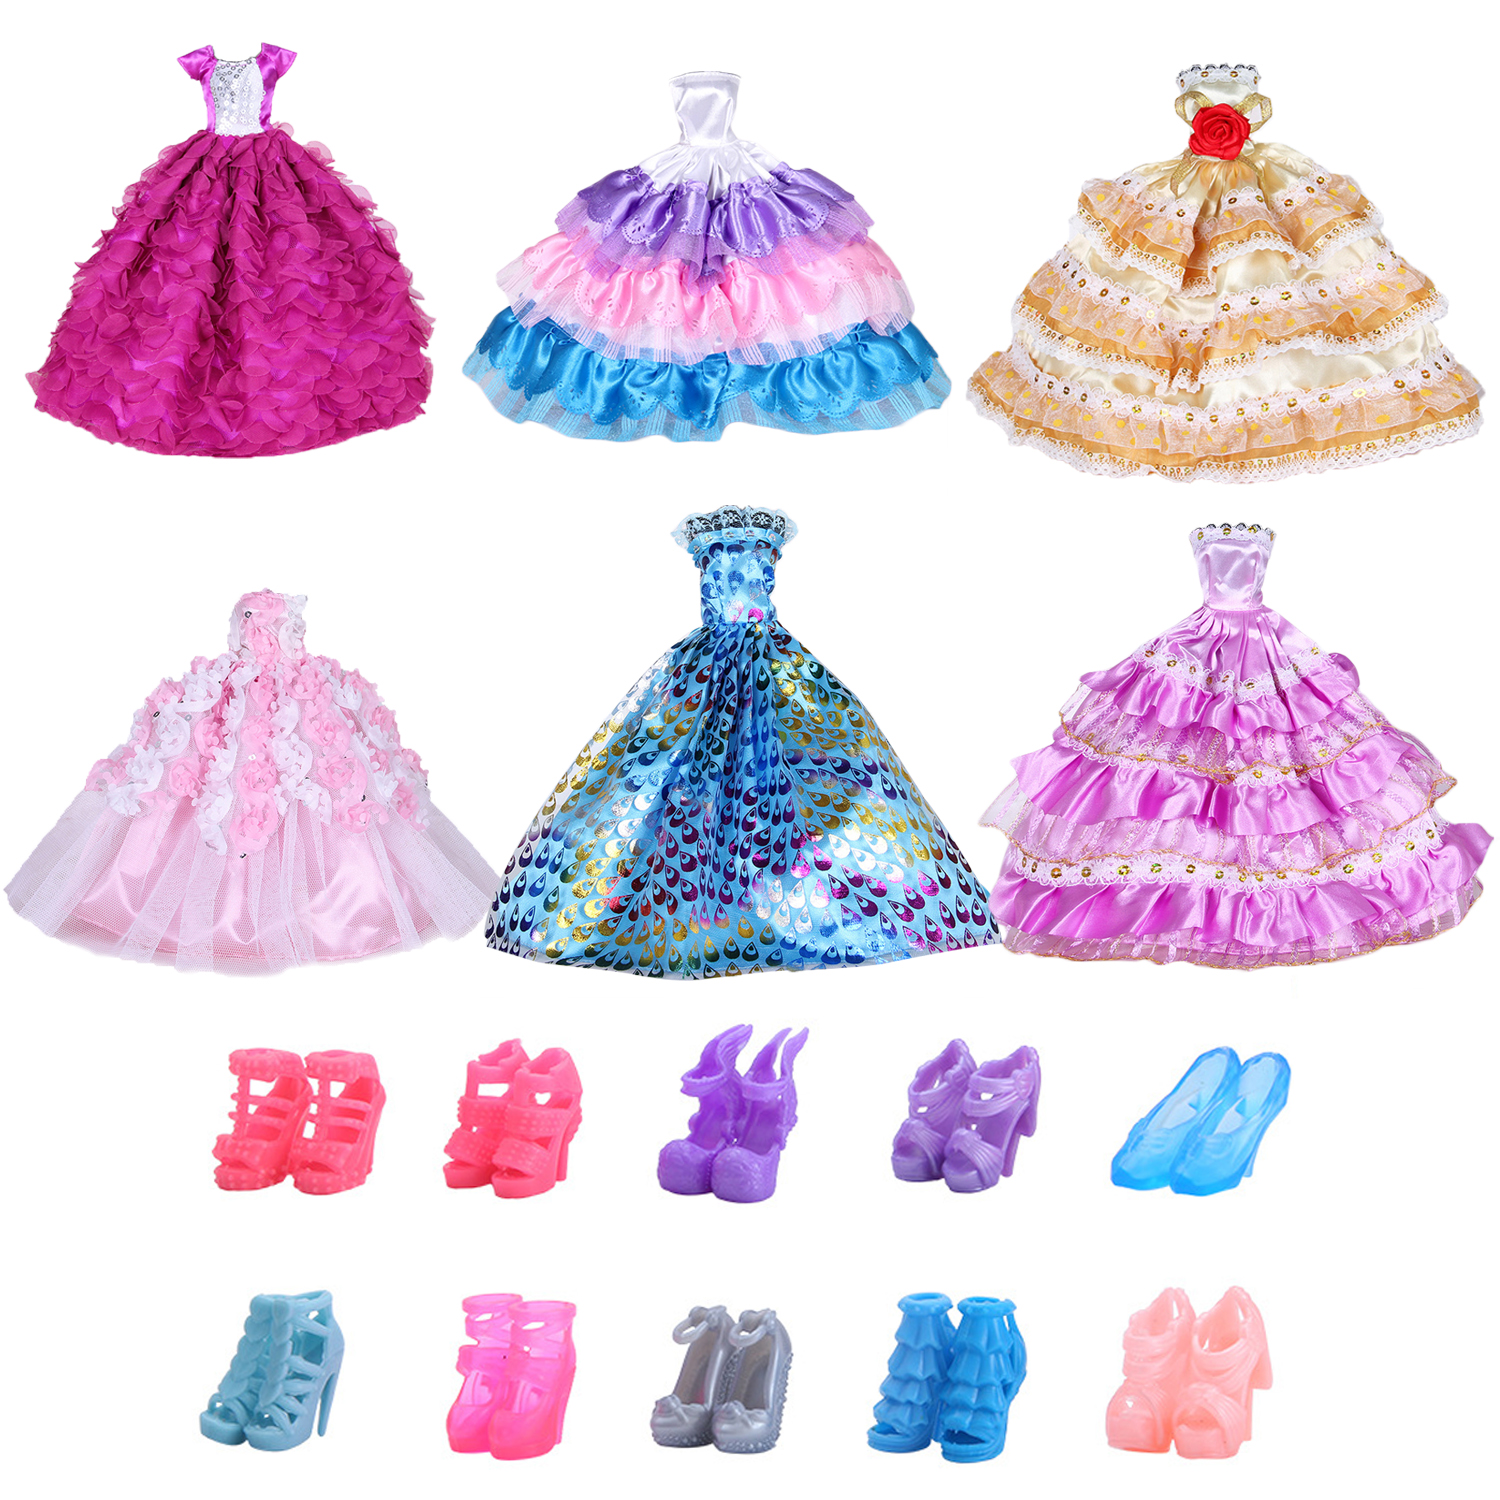 2fa18d352e Worldwide delivery barbie clothes barbie shoes in NaBaRa Online